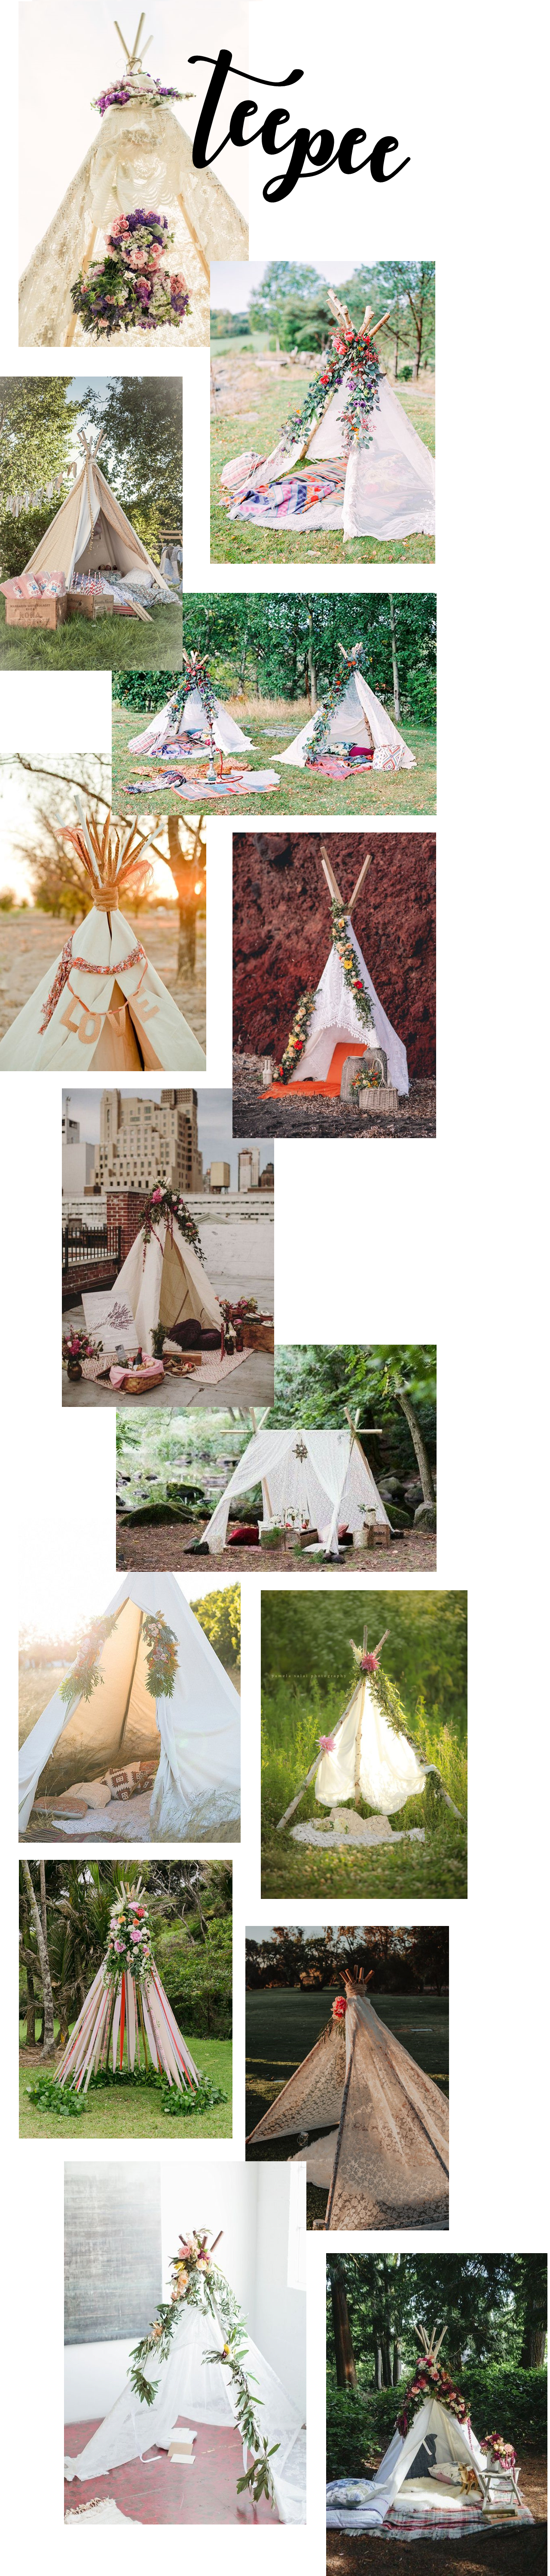 00000 WEDDING teepee